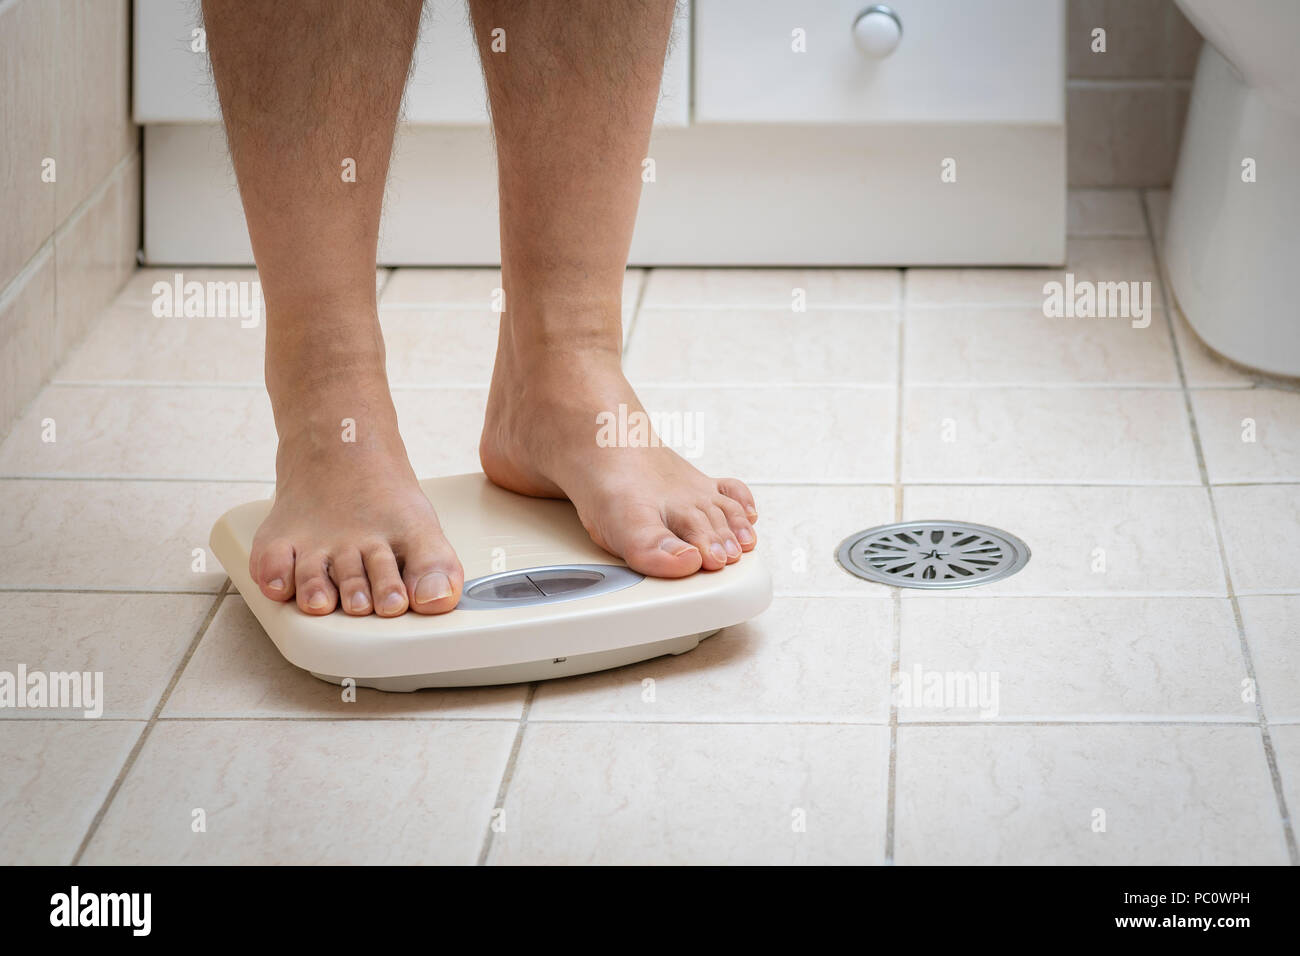 Cropped image of man feet standing on weigh scale, on the bathroom floor - Stock Image